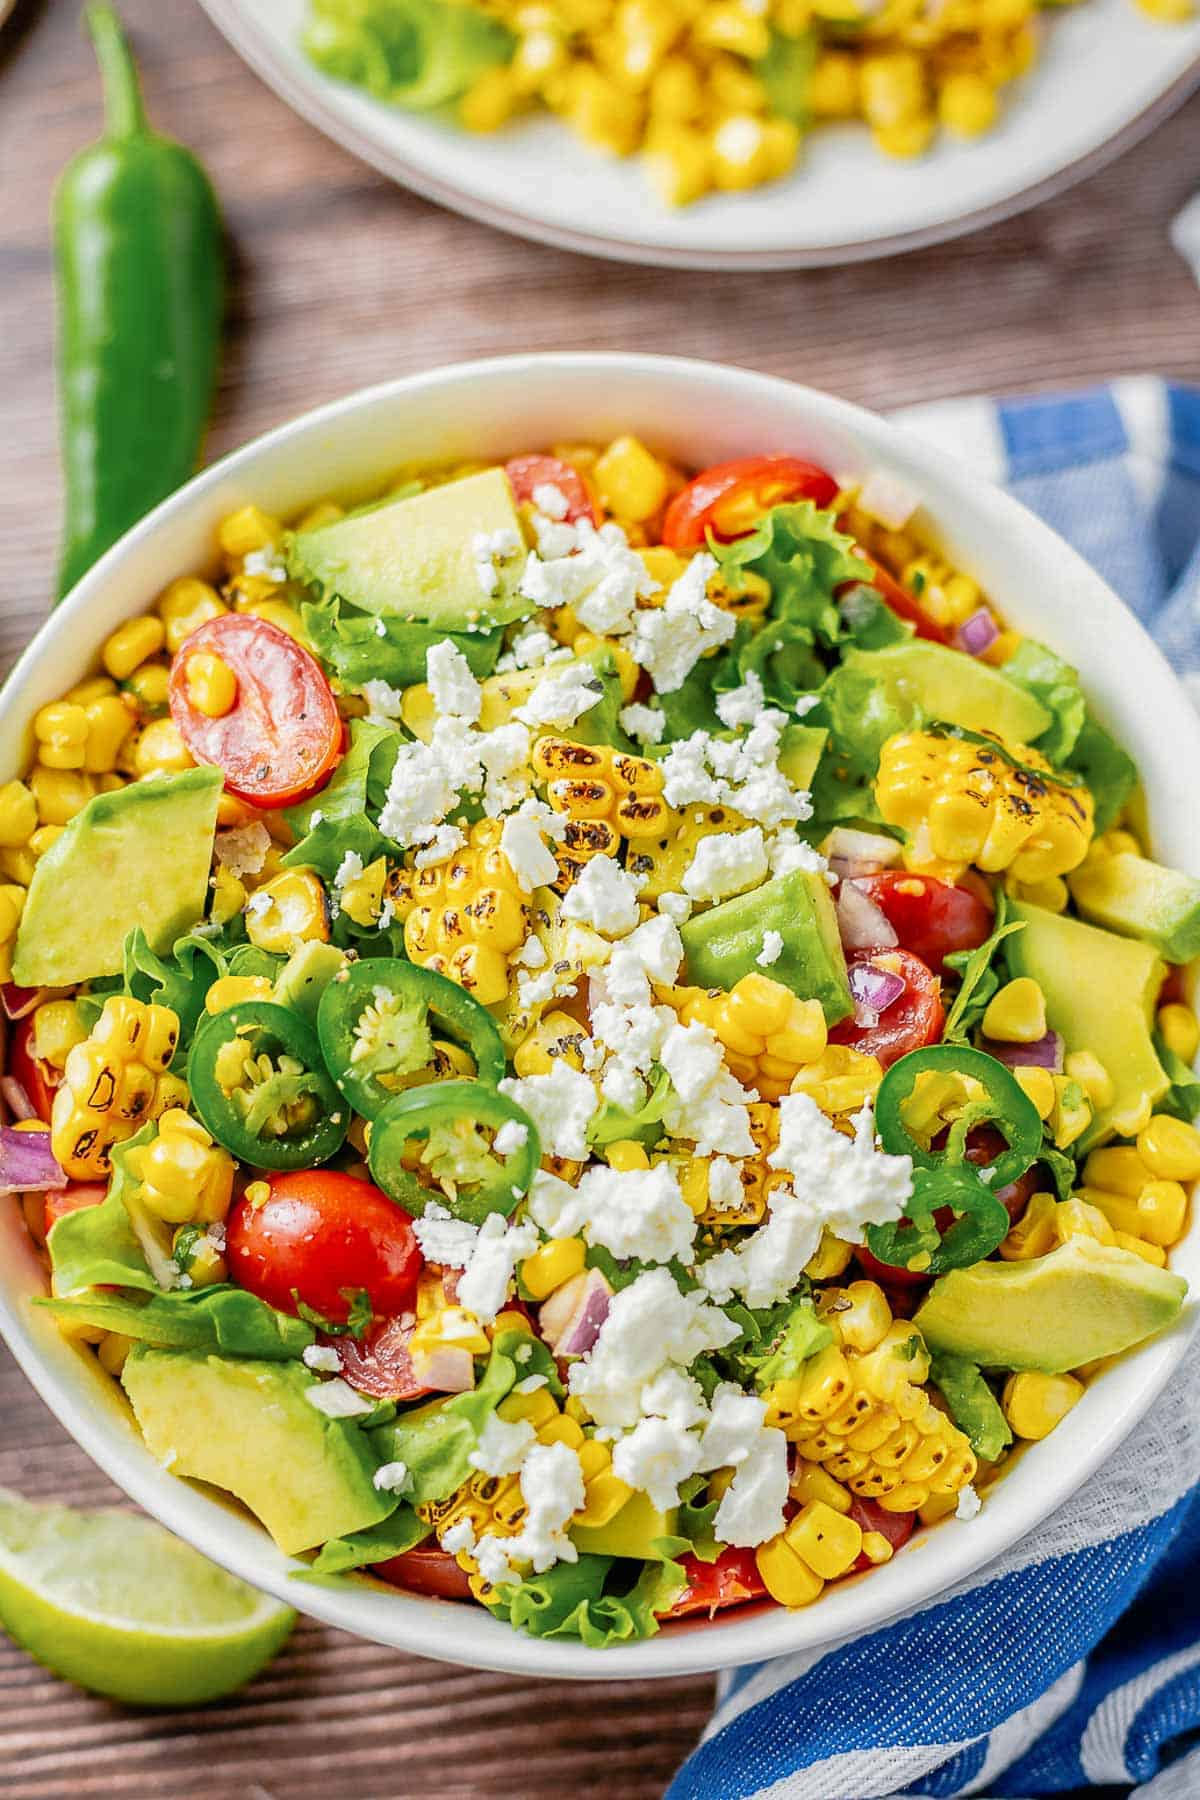 grilled corn salad with lettuce, avocado, tomatoes, onion in a white bowl on a wooden table with blue white striped towel next to it